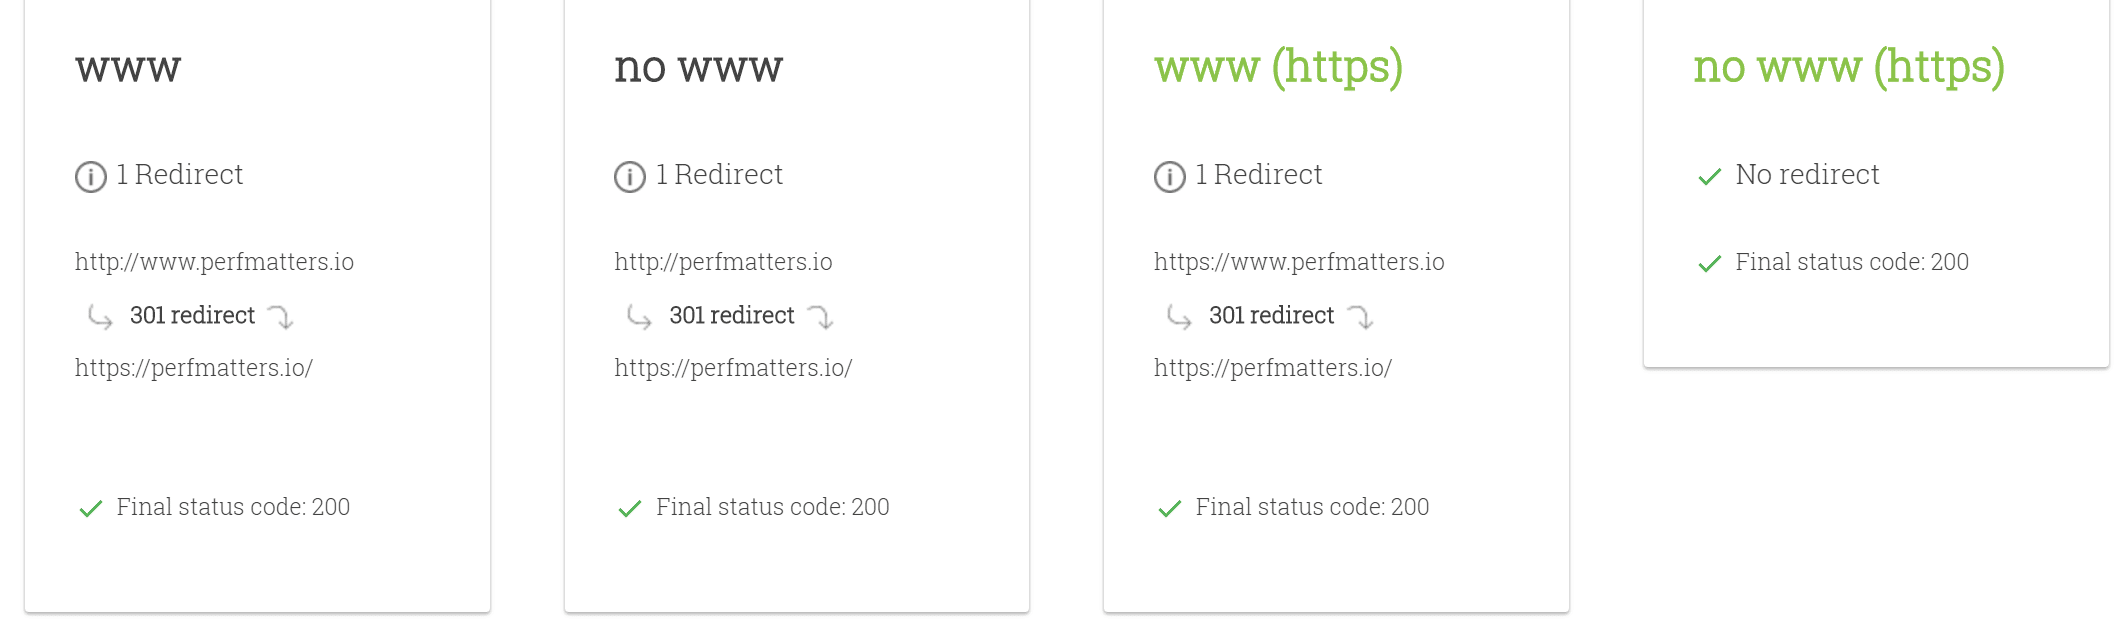 redirects setup correctly